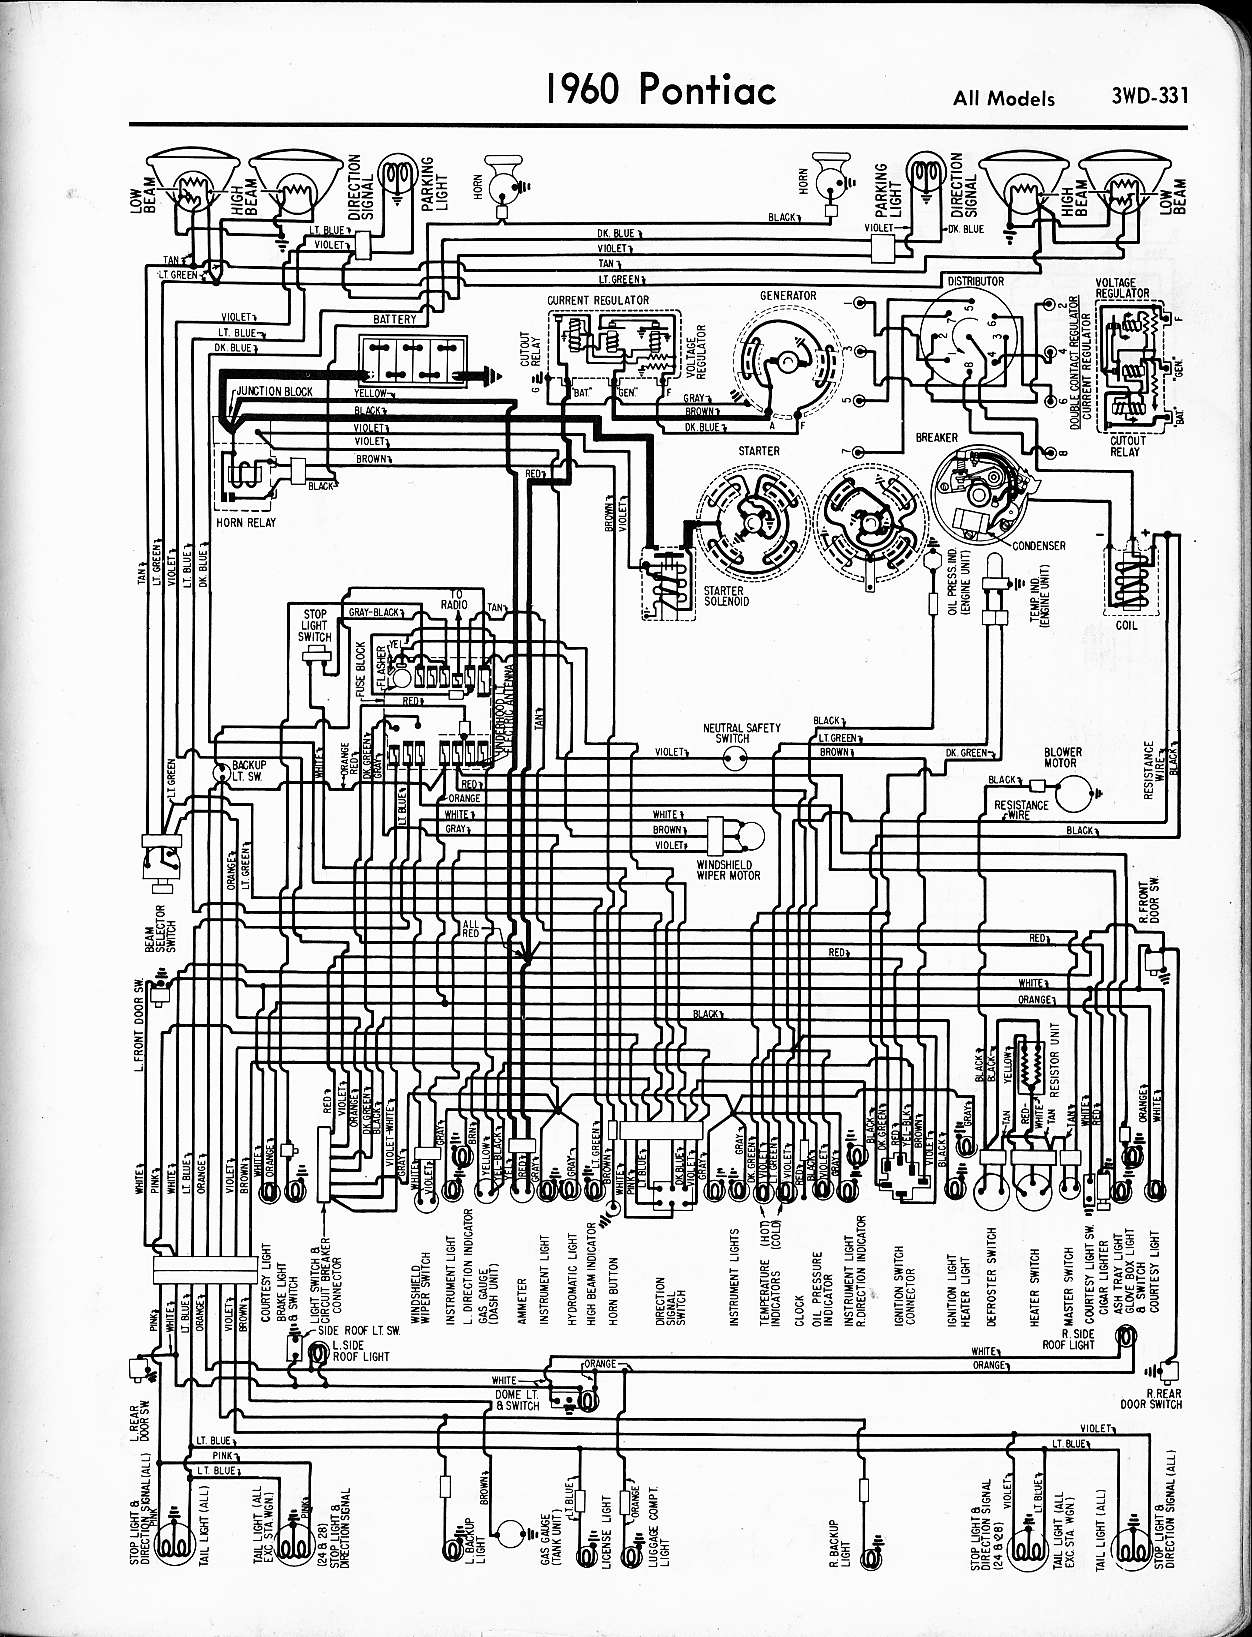 1958 pontiac wiring diagram wiring diagram third level1958 pontiac chieftain wiring diagram wiring diagrams 1966 pontiac wiring diagram 1958 pontiac wiring diagram